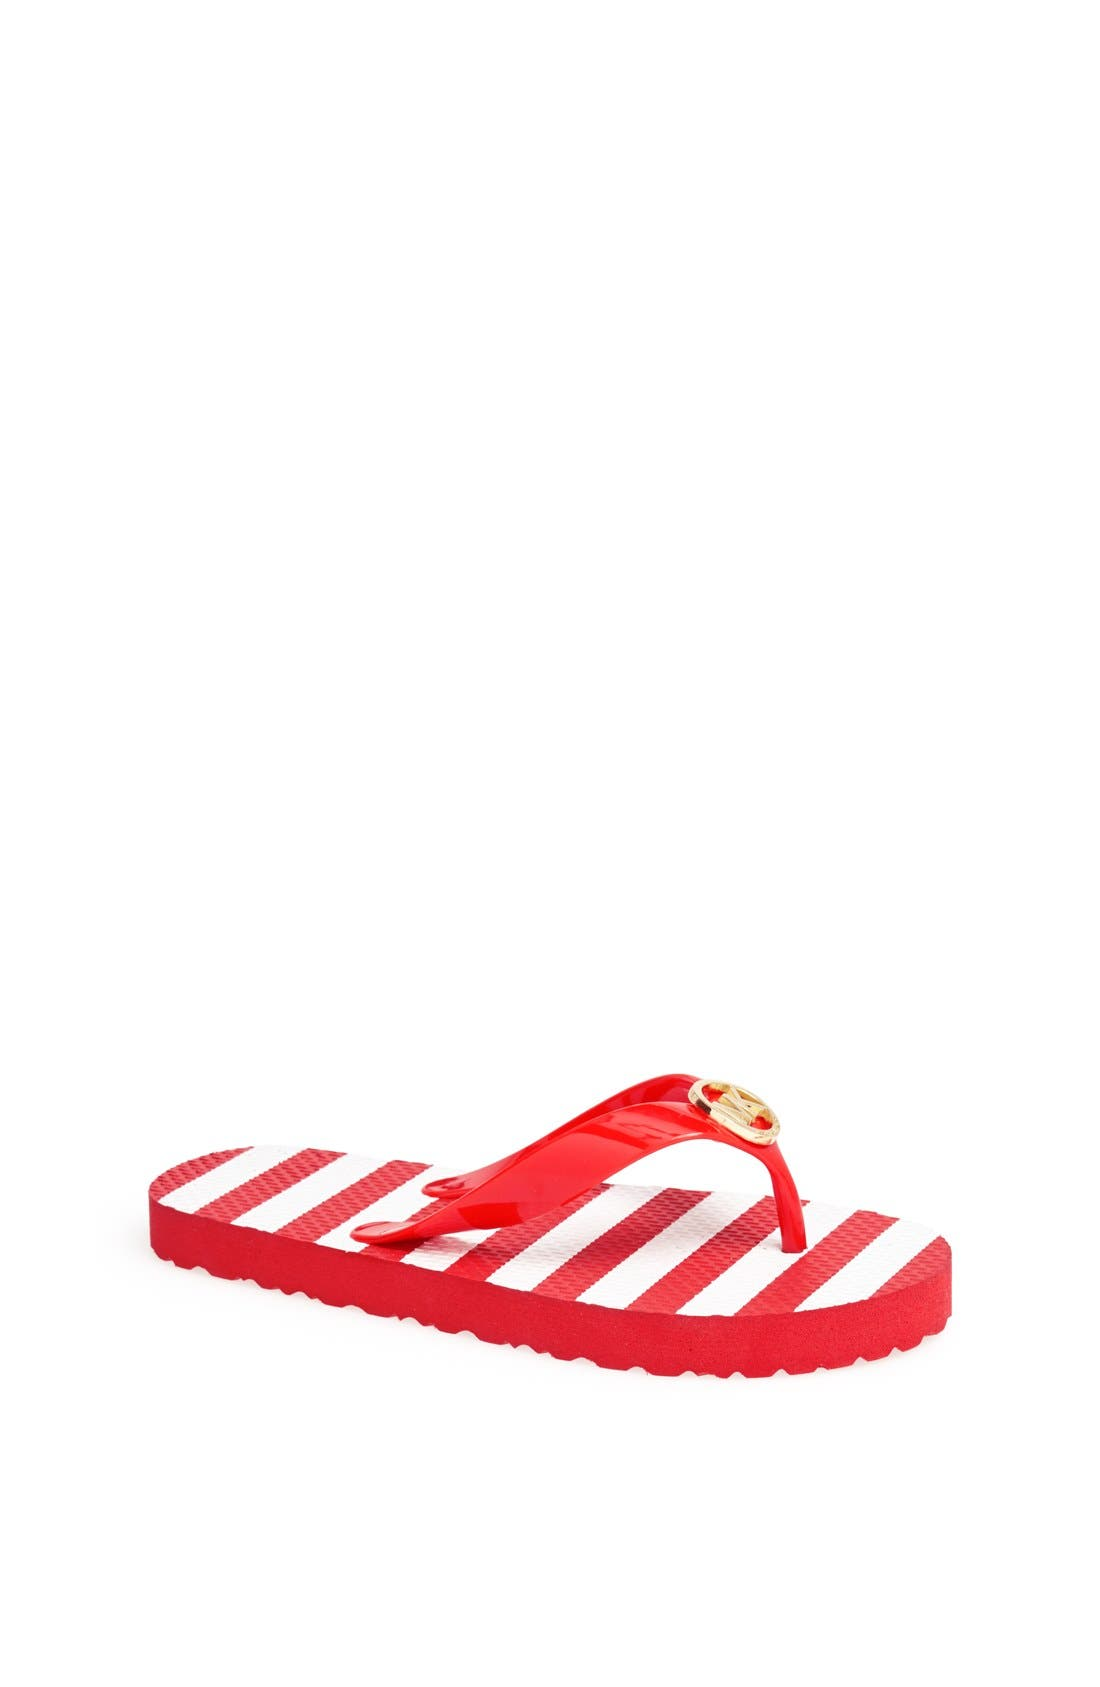 Main Image - MICHAEL Michael Kors 'Endine' Flip Flop (Toddler, Little Kid & Big Kid)